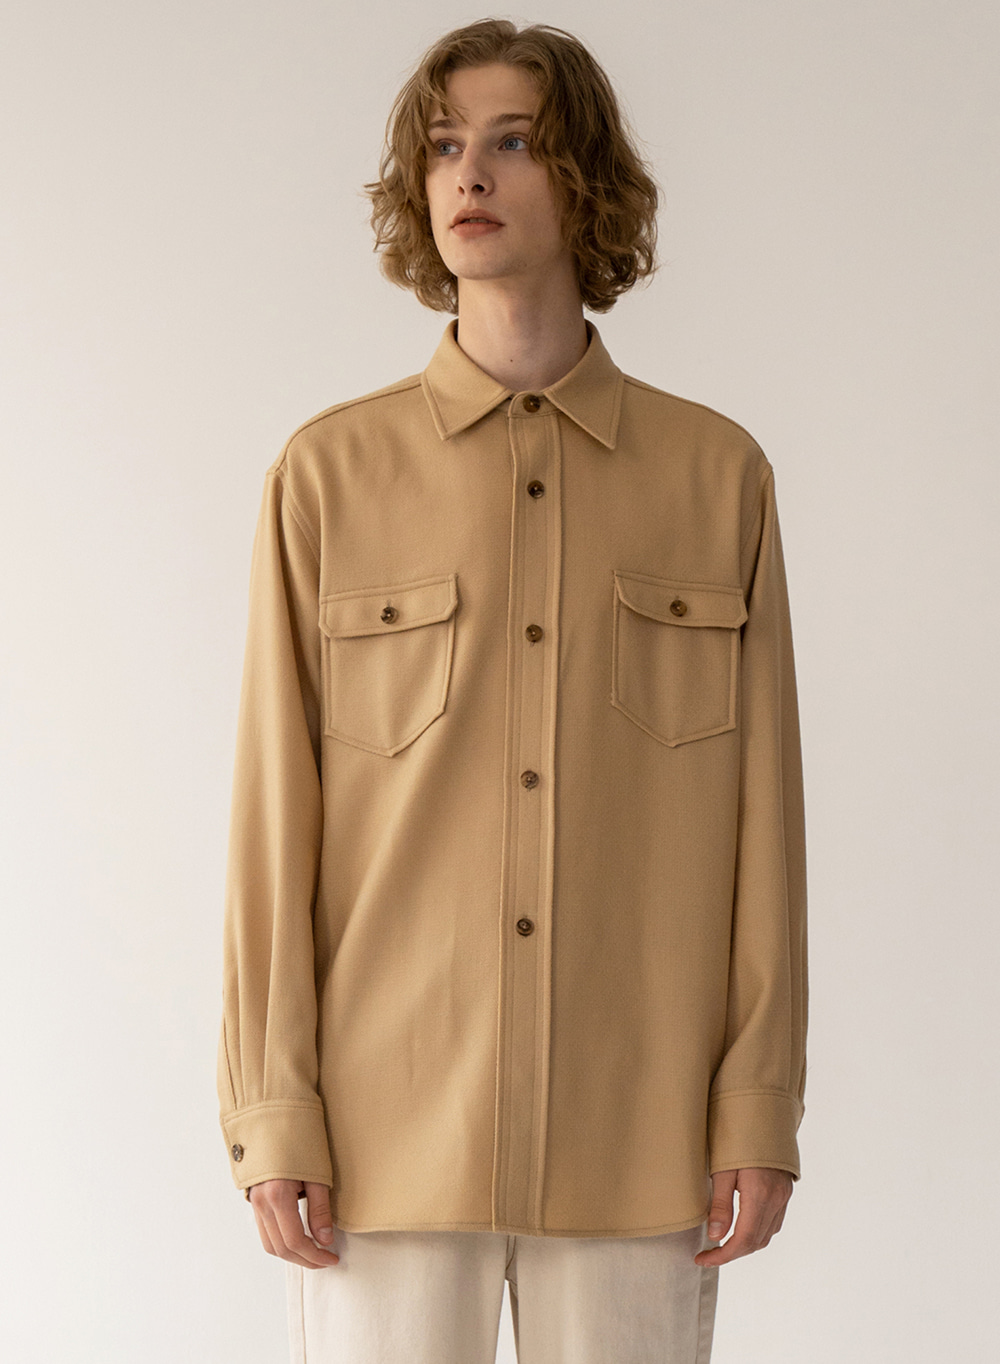 [FW20 ESSENTIAL] Outpocket Overshirt Sand-beige